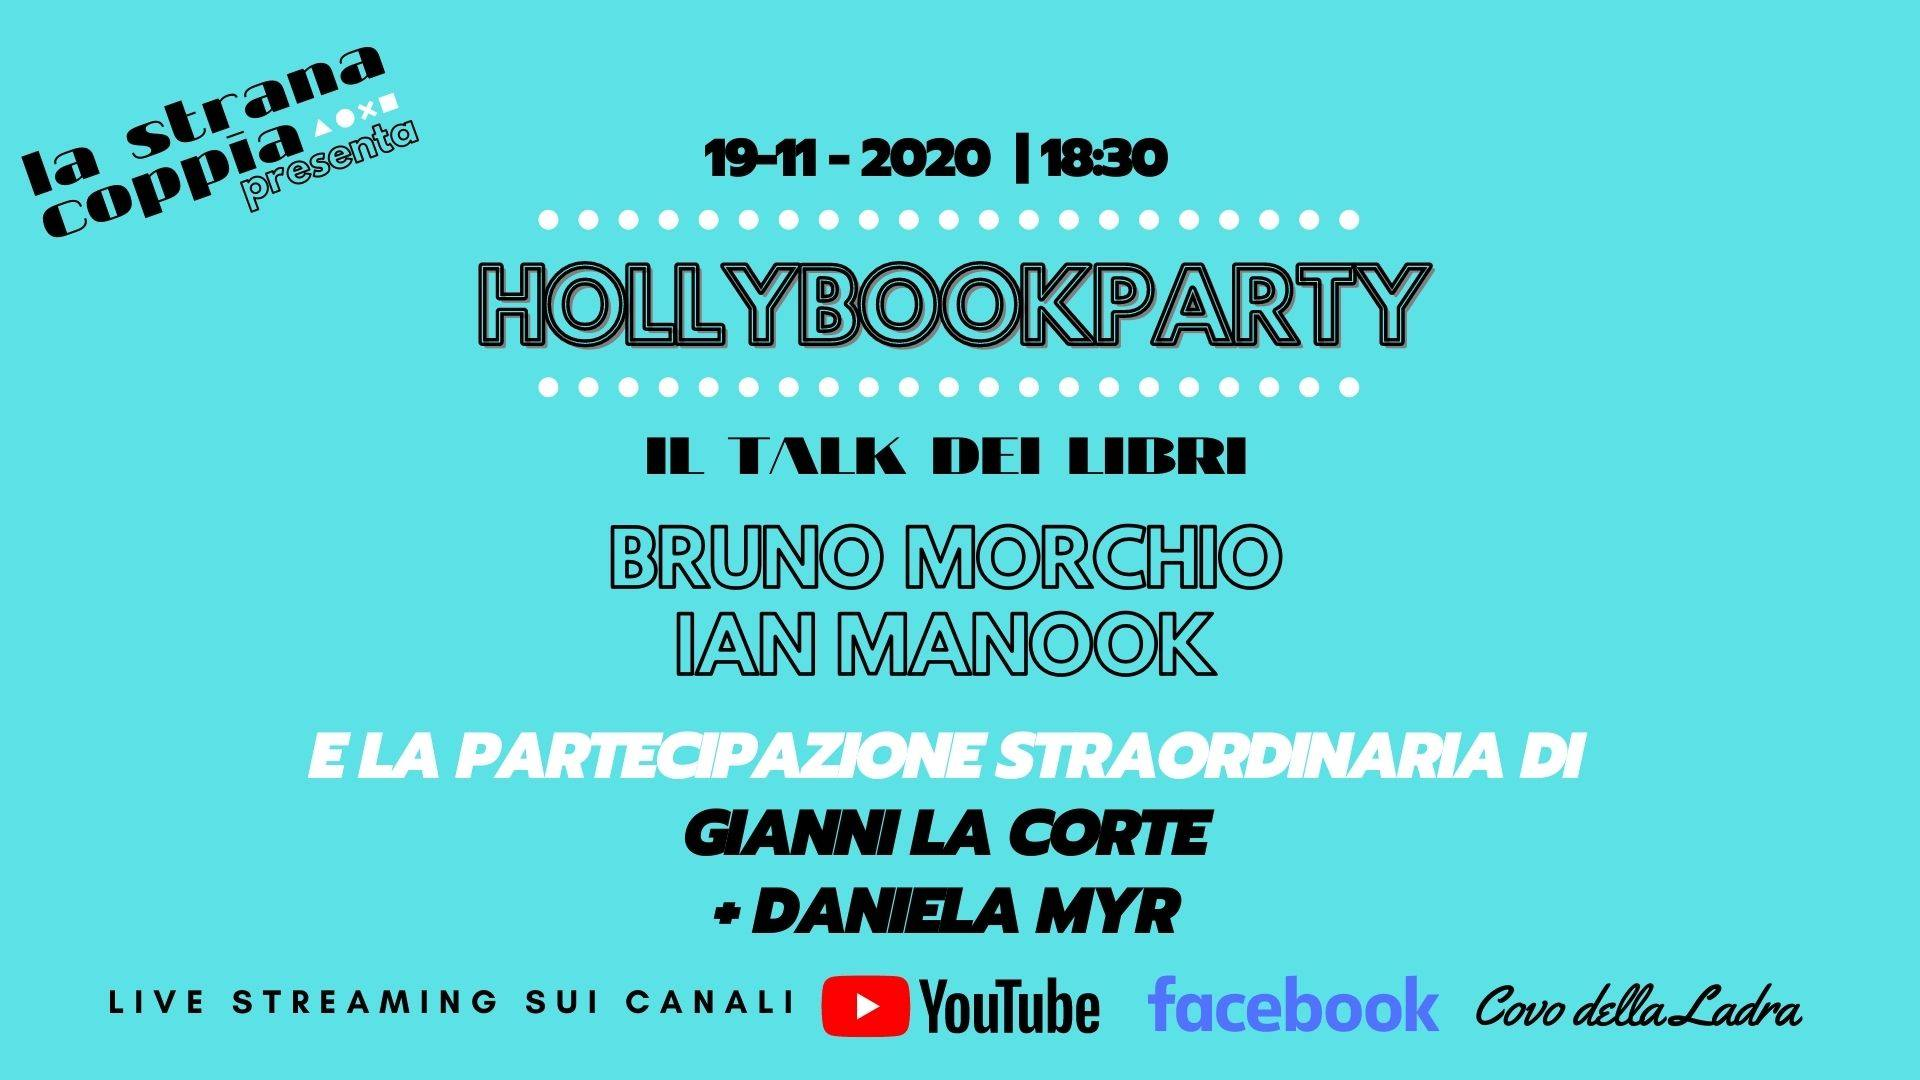 HollyBookParty #5 IanManook+BrunoMorchio+Gianni La Corte+Daniela Myr